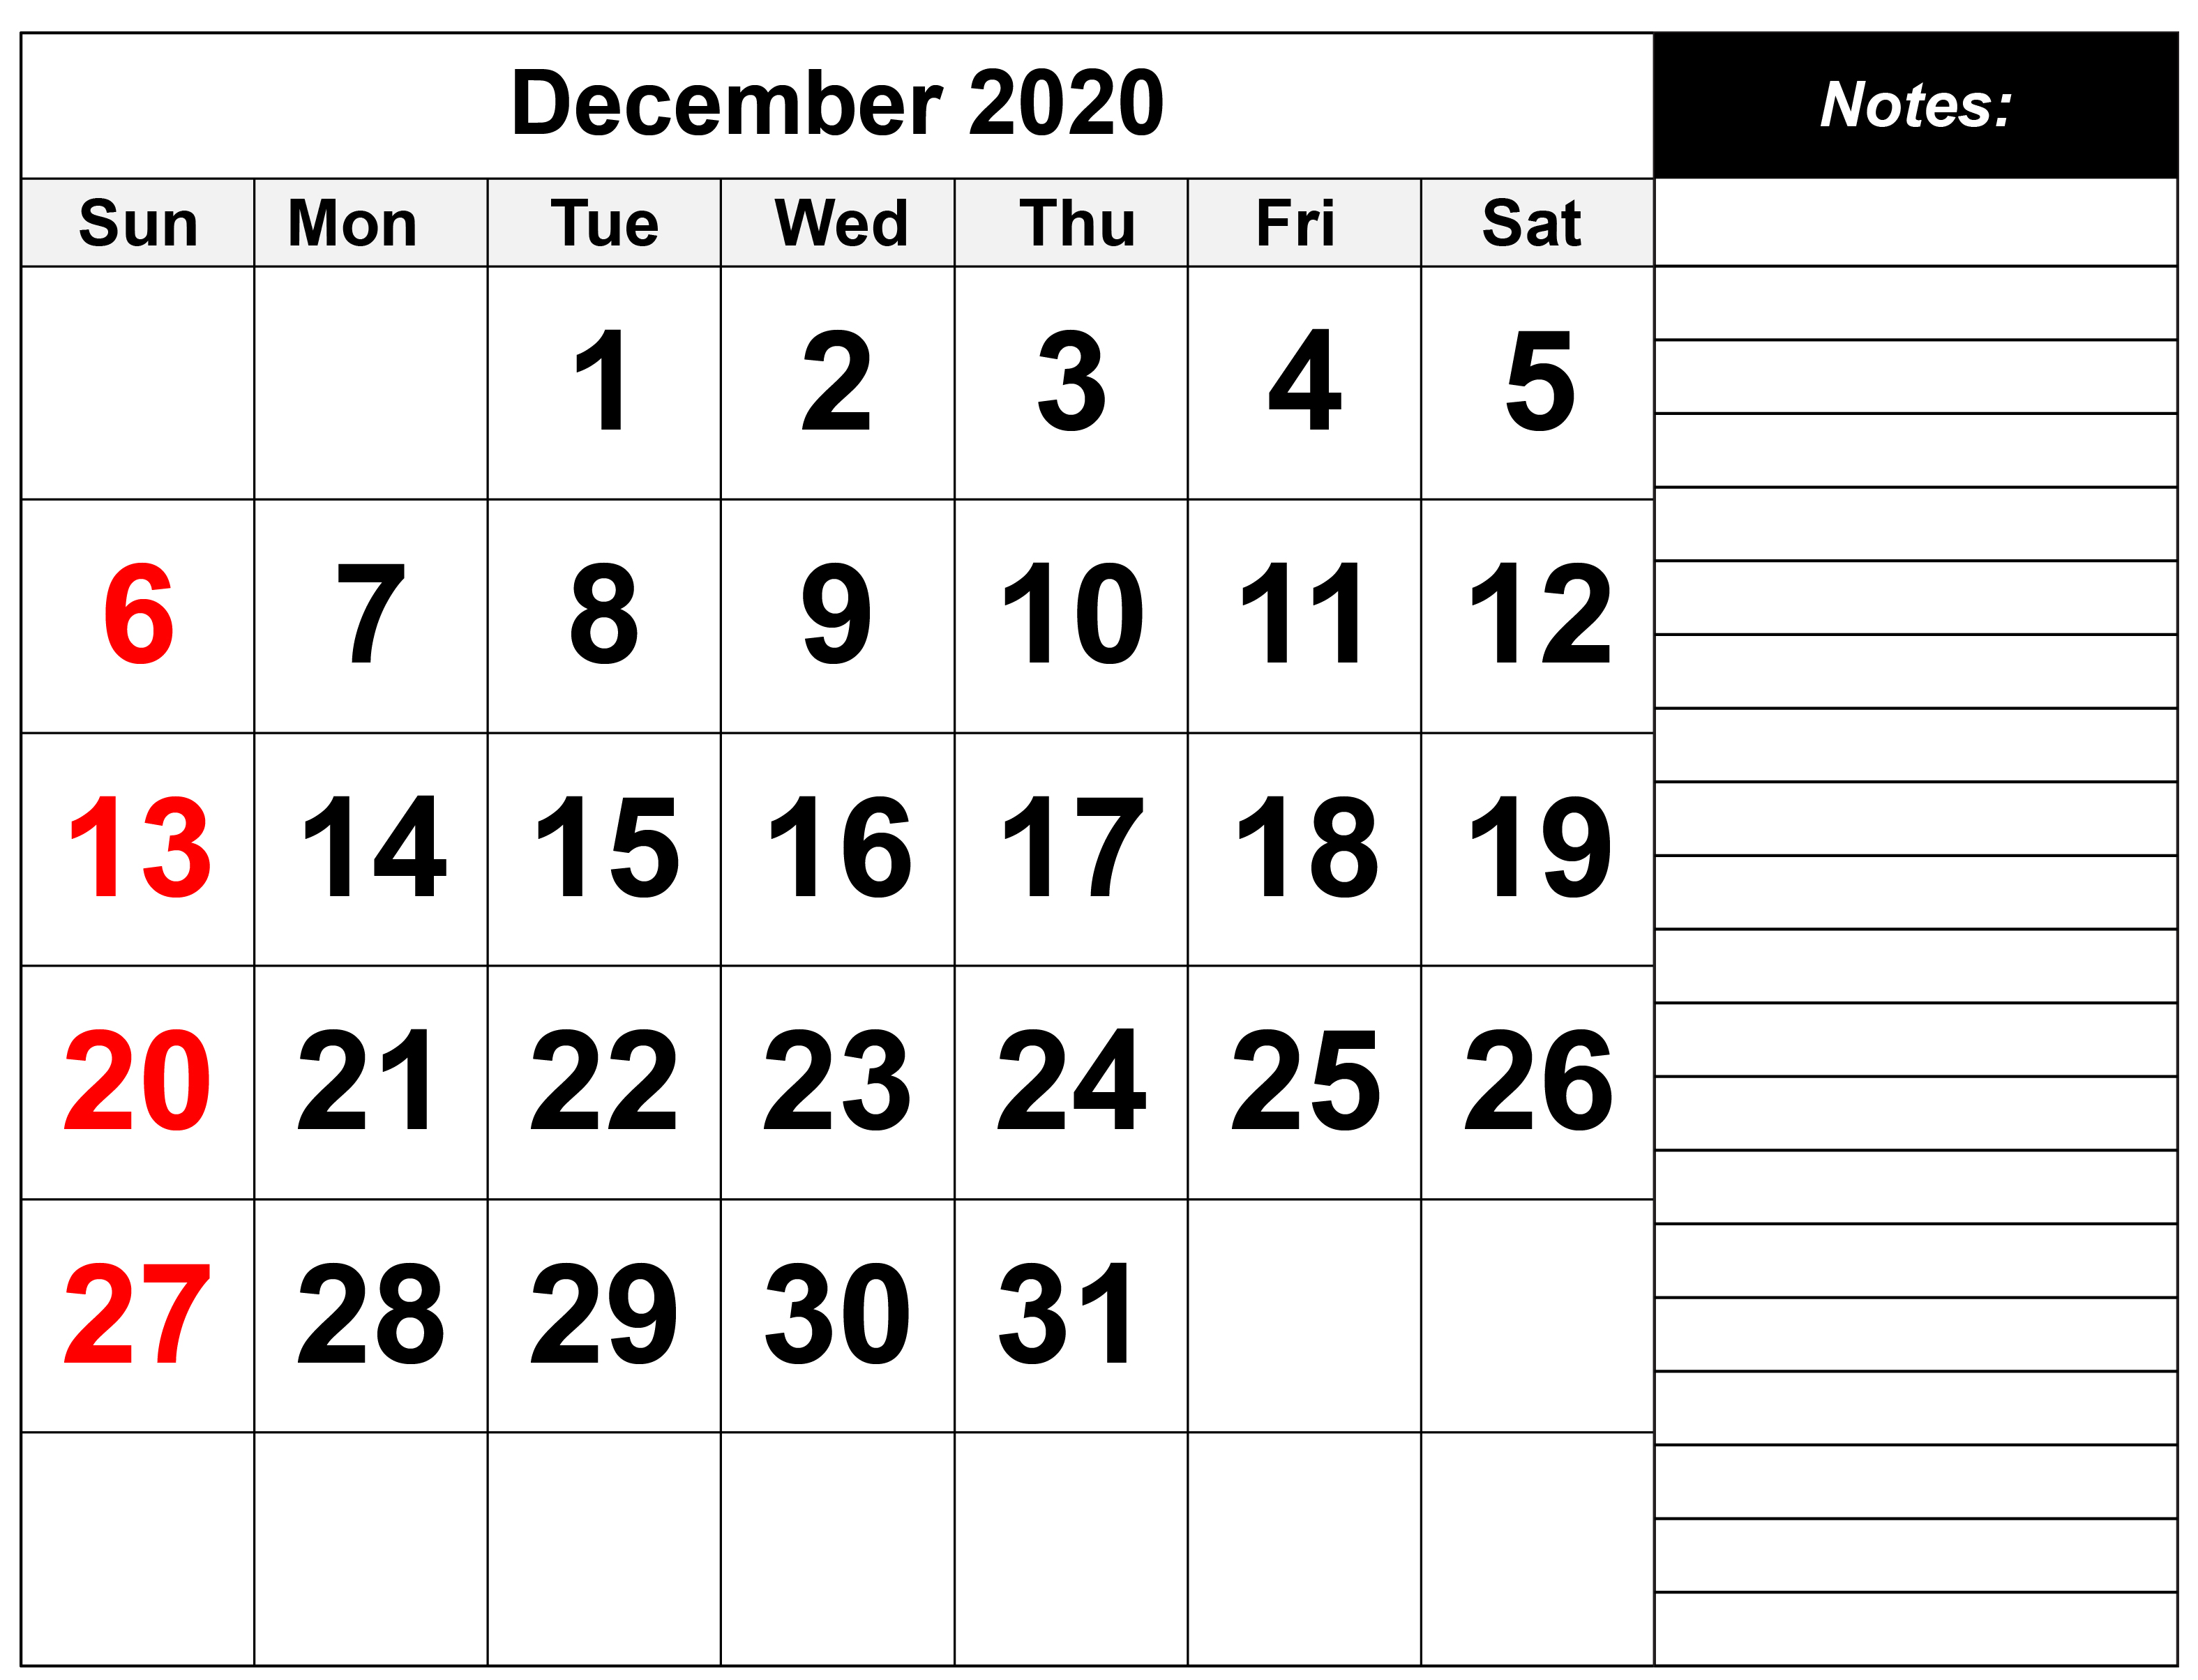 December 2020 Calendar Printable Vertical